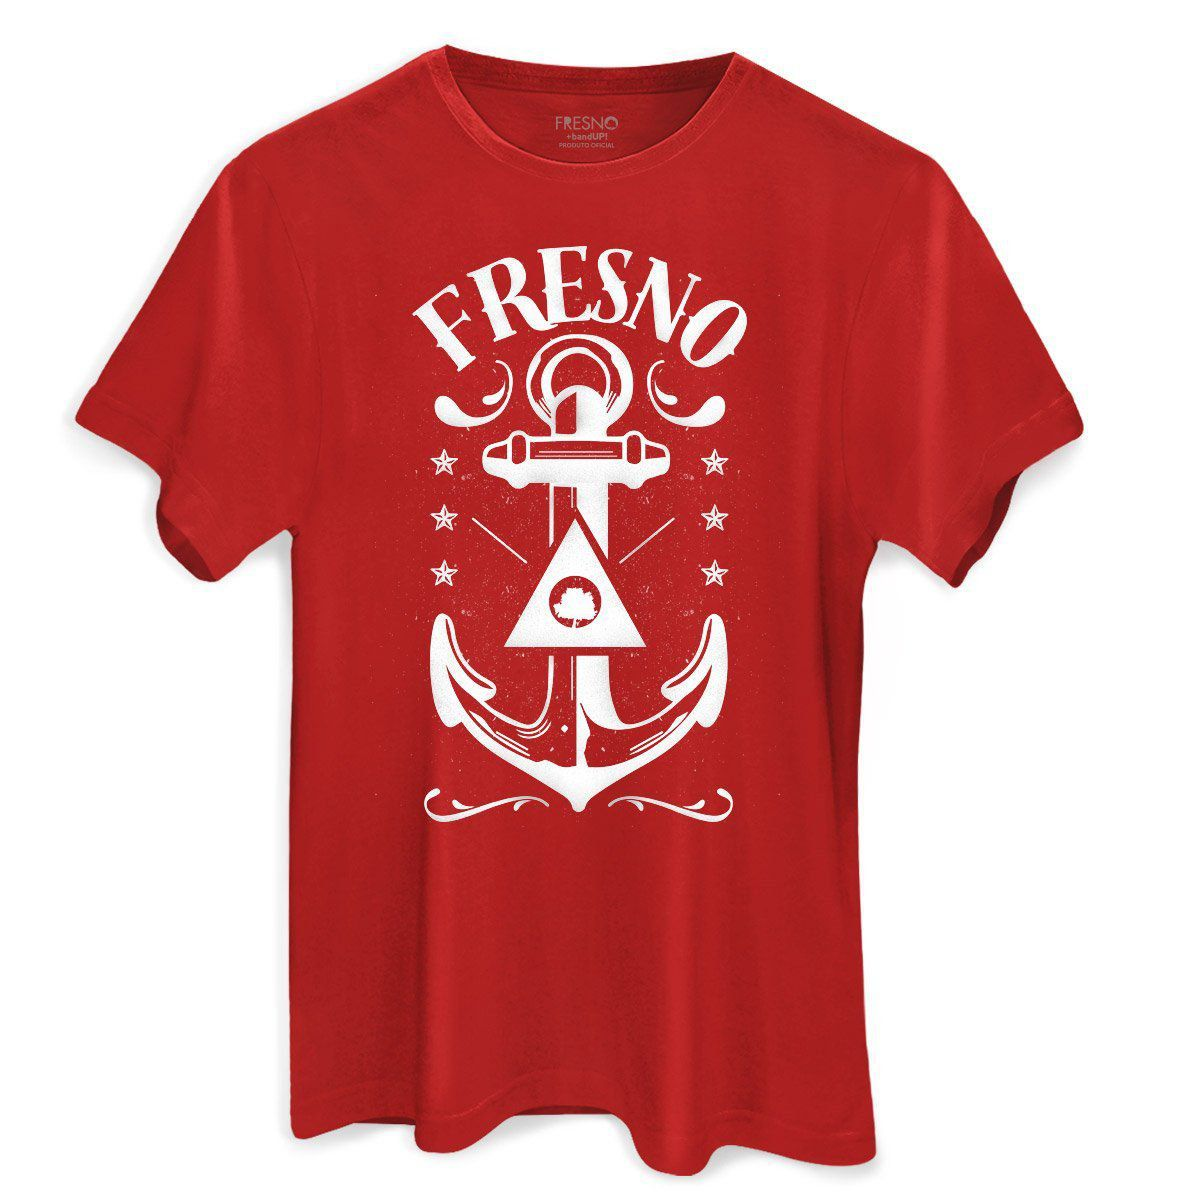 Camiseta Masculina Fresno Anchor Red